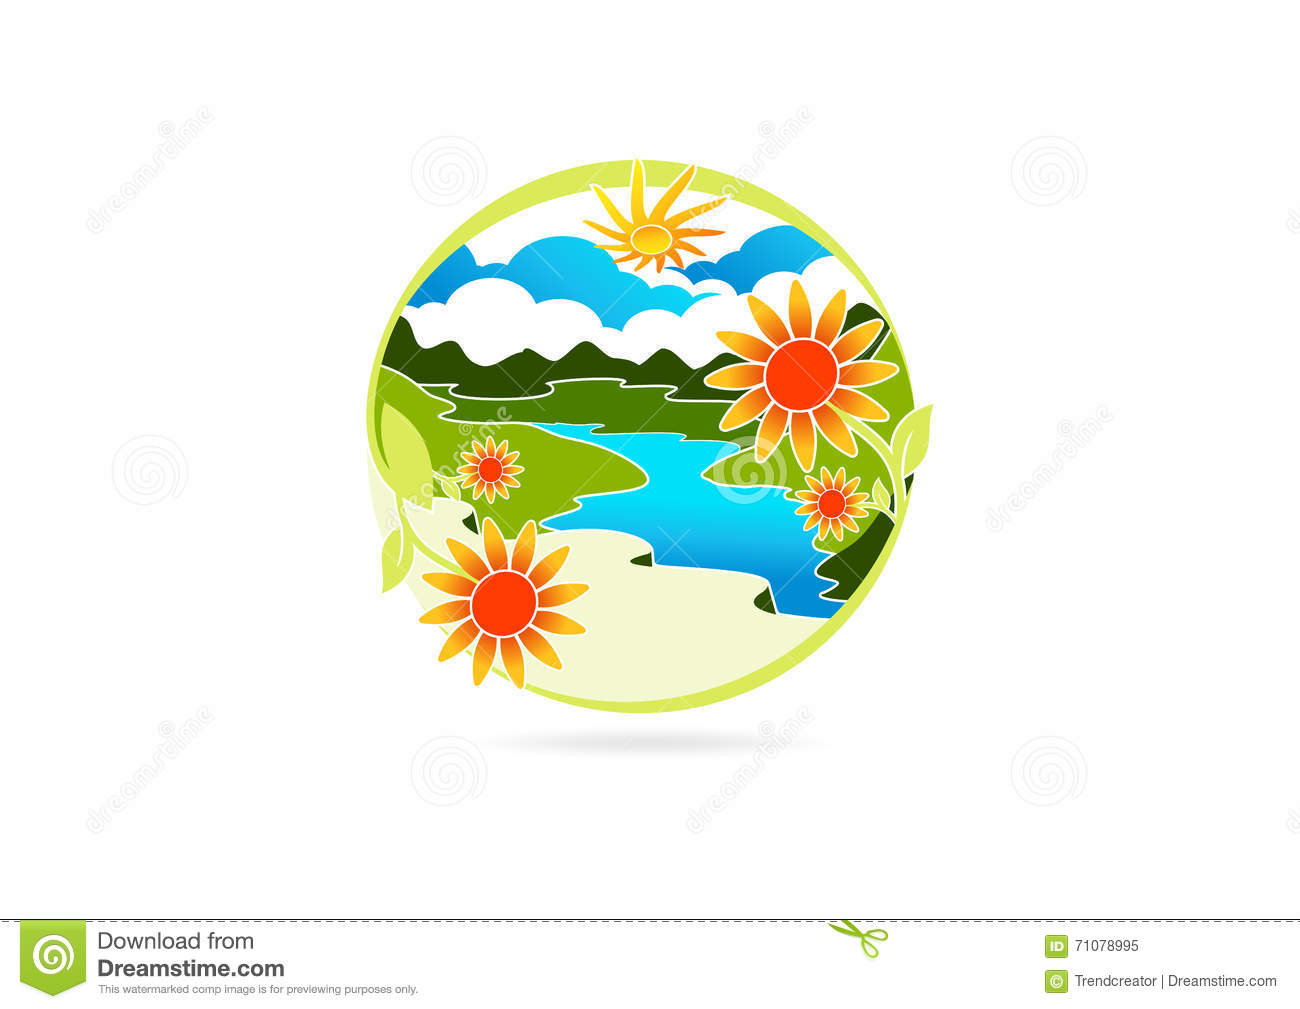 River logo flower leaf symbol nature mountain icon for Landscape design icons